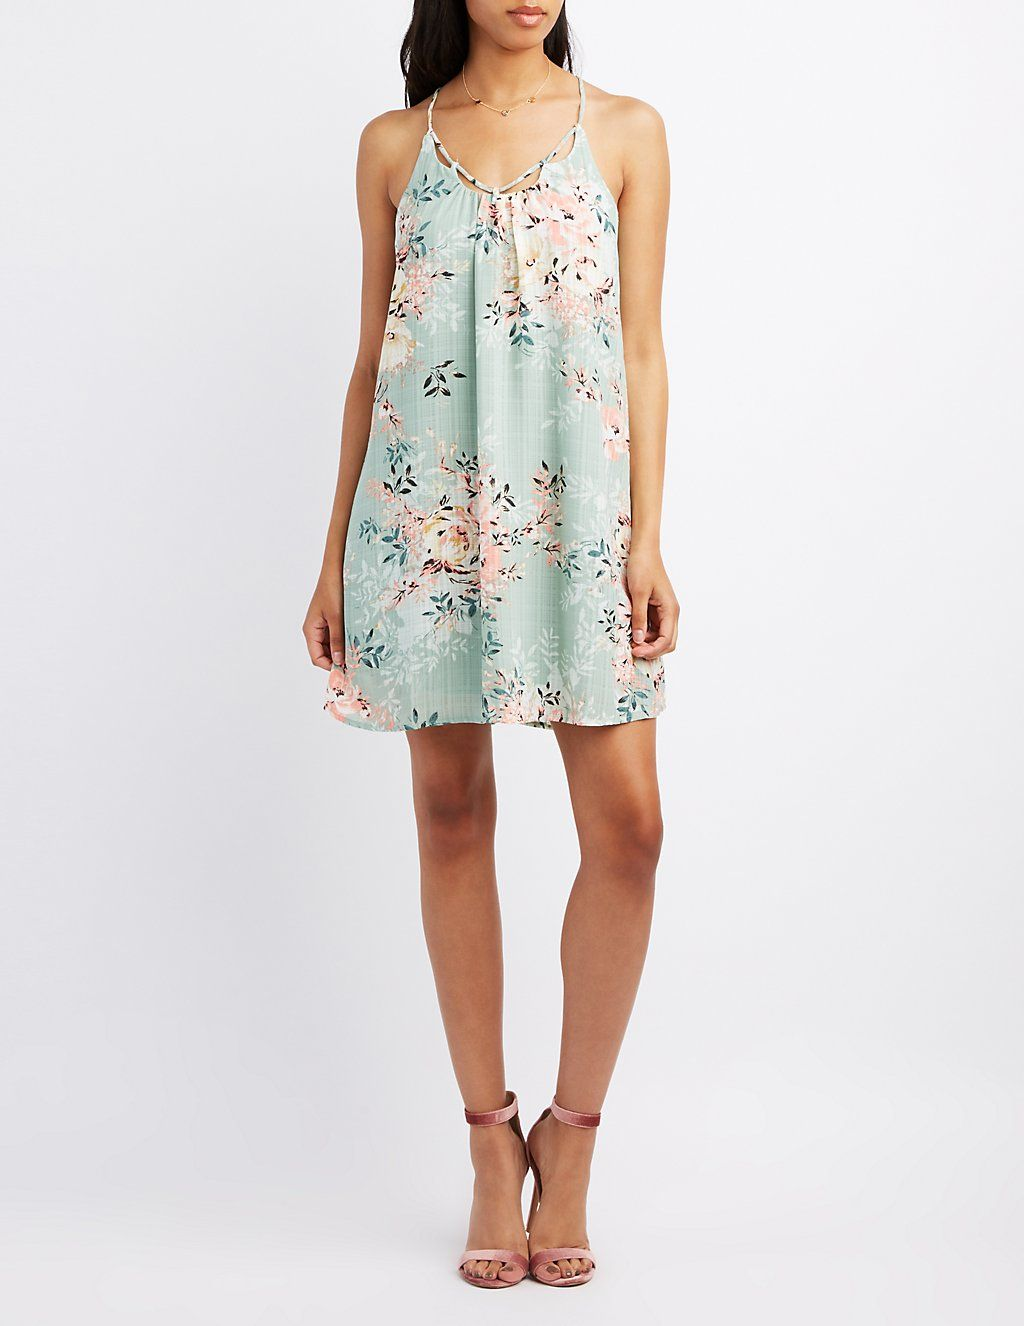 Floral Strappy Shift Dress | Charlotte Russe | My Style | Pinterest ...